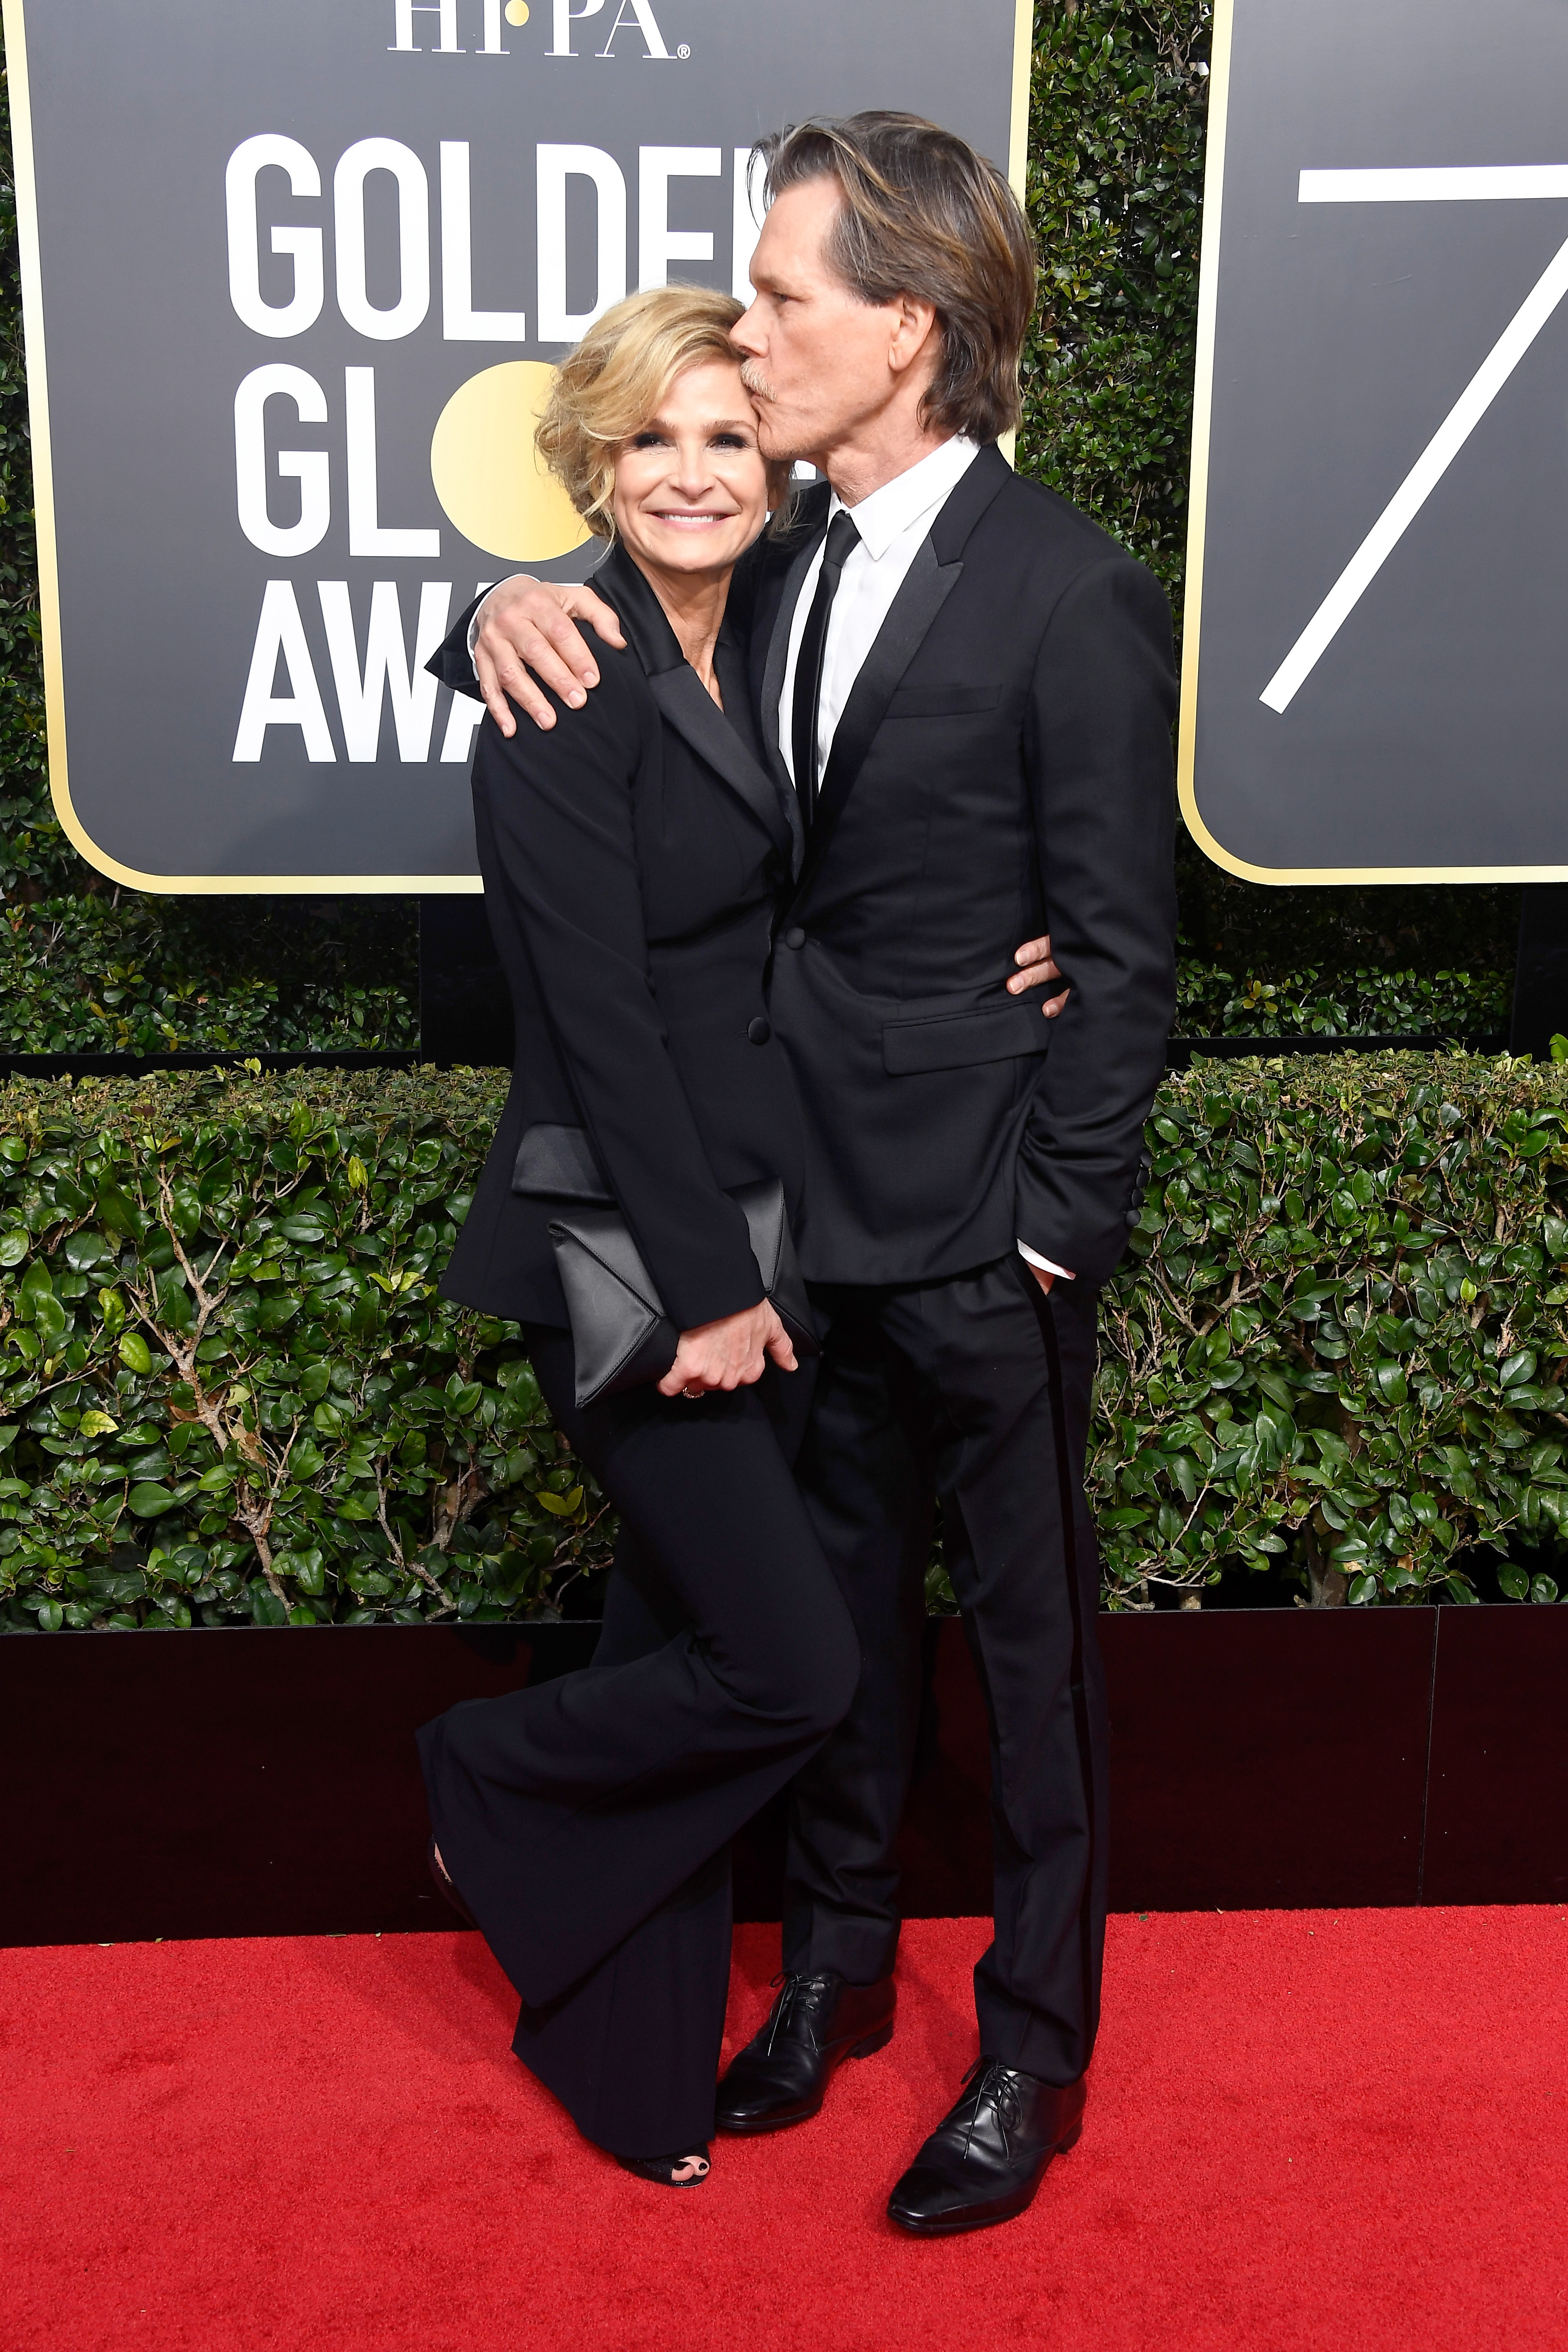 Kevin Bacon and Kyra Sedgwick 2018 Golden Globes